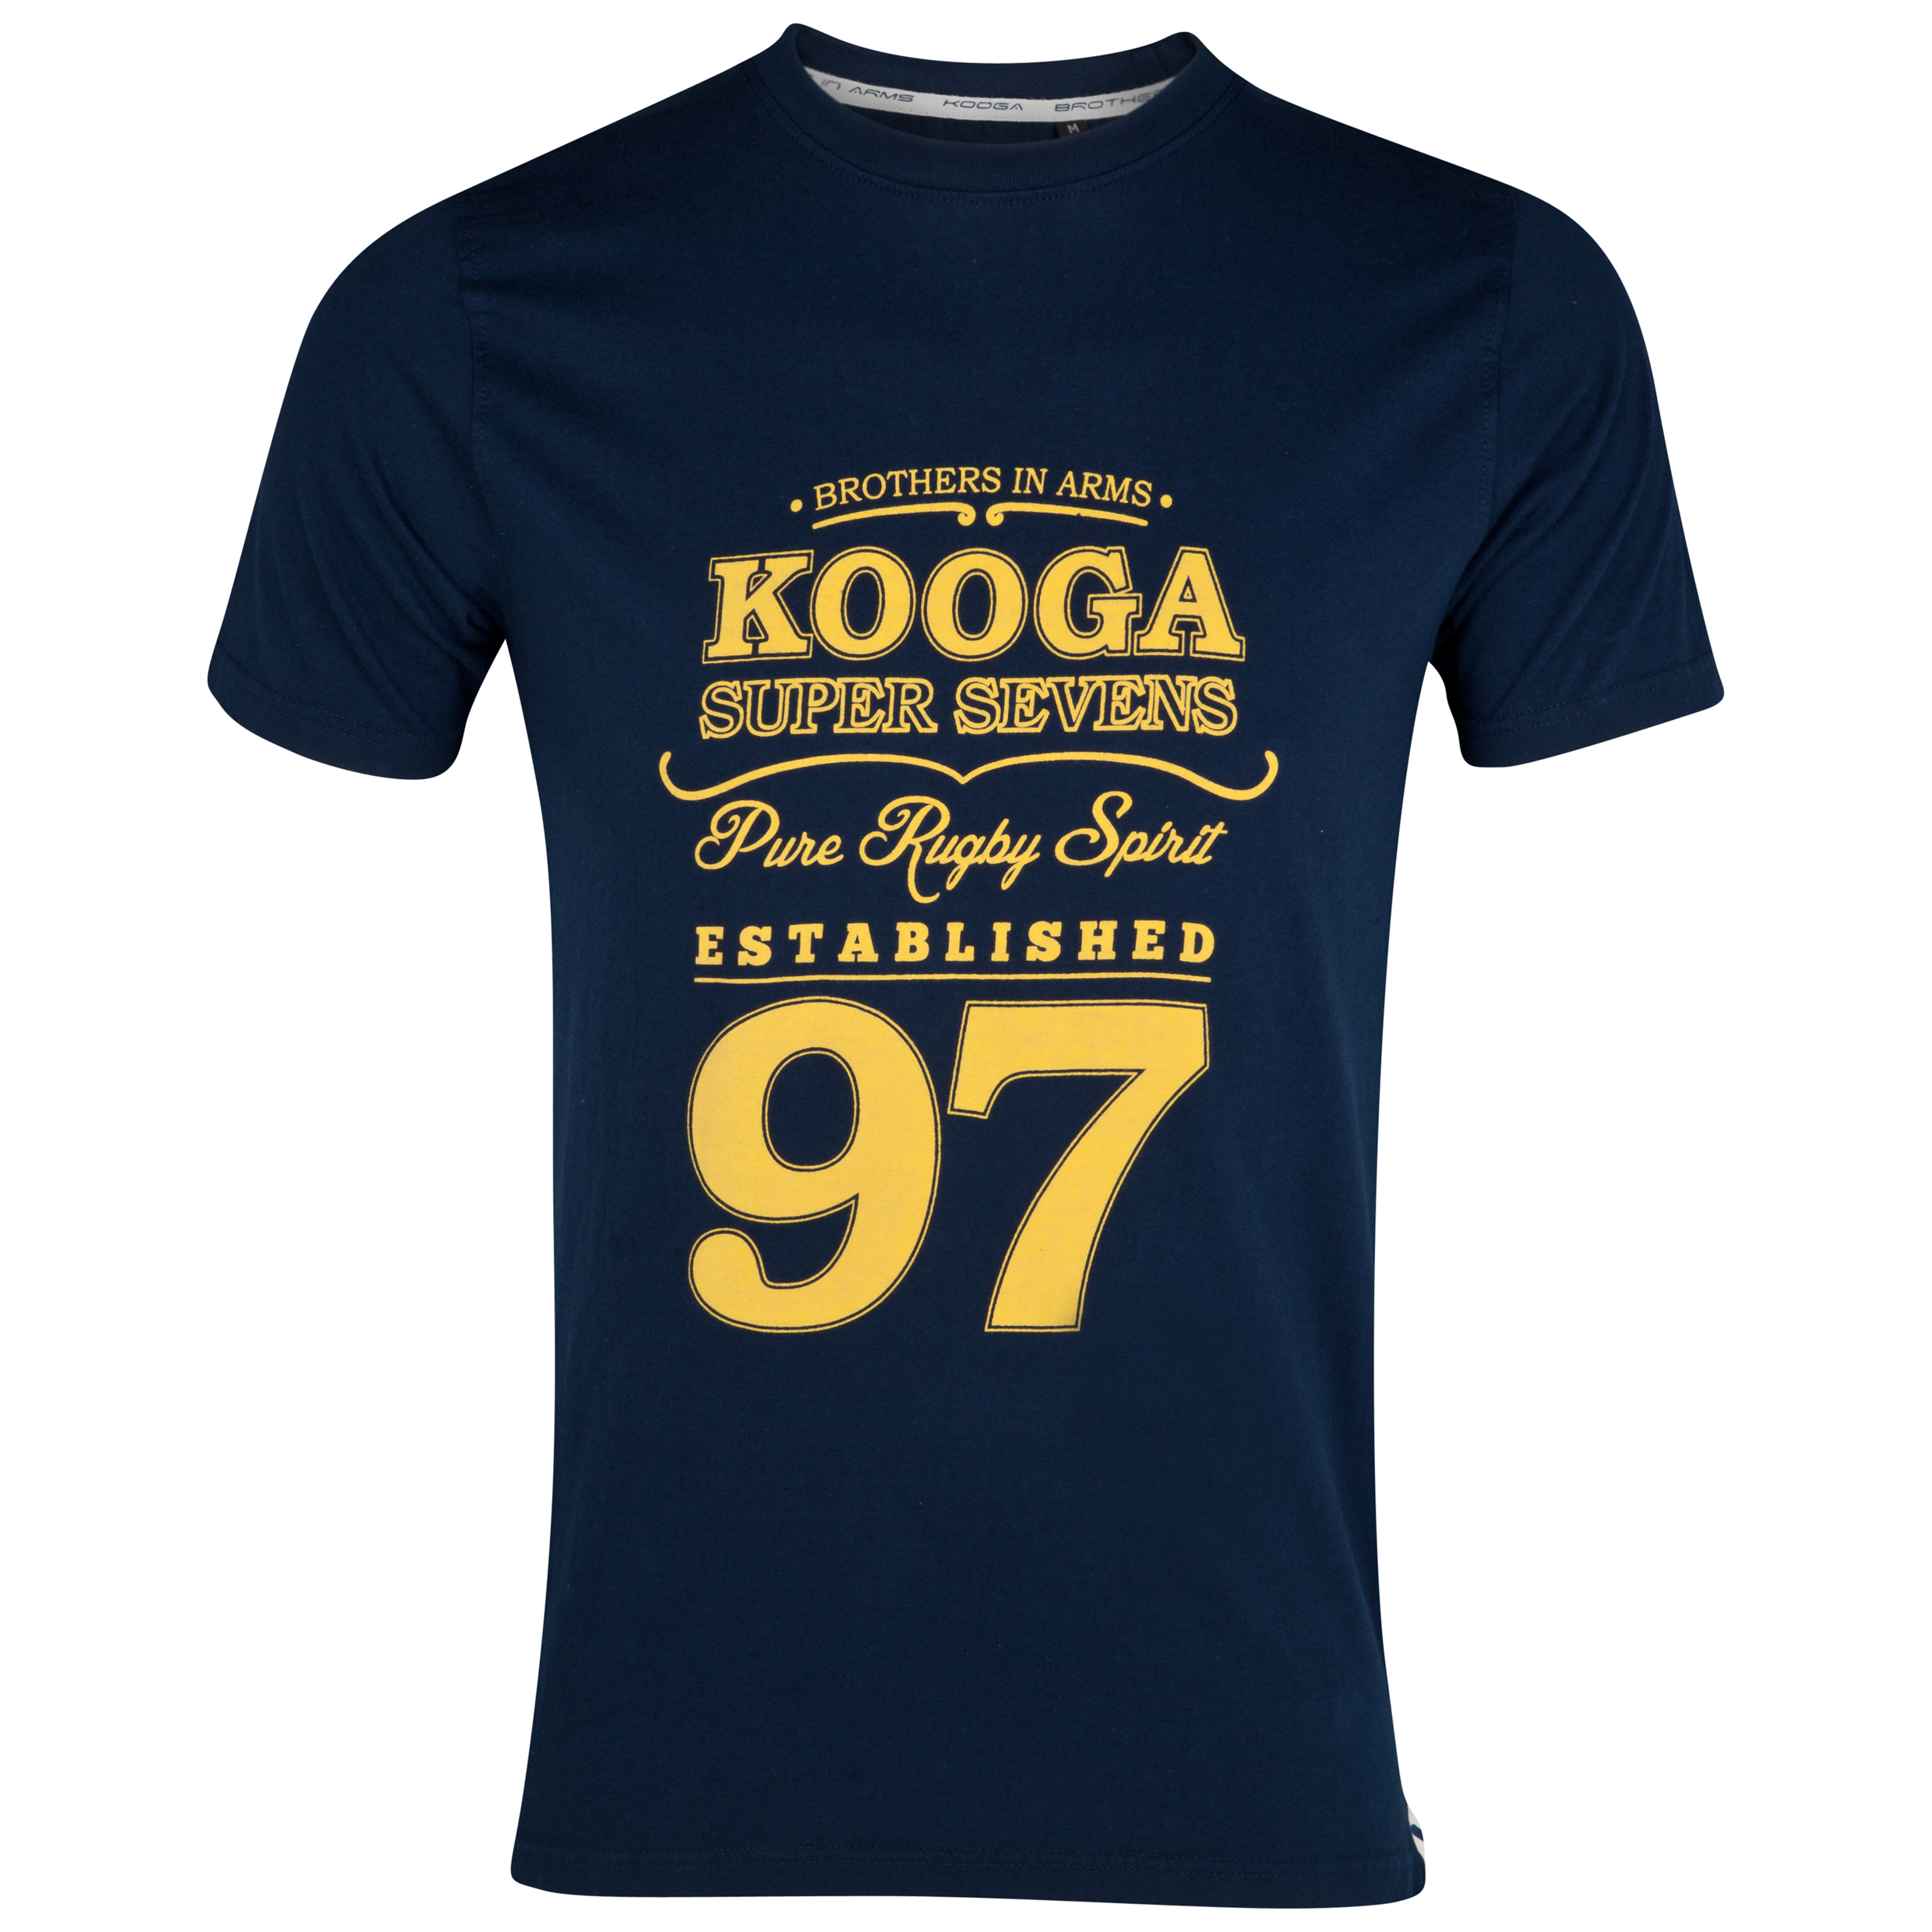 Kooga T-Shirt - Navy